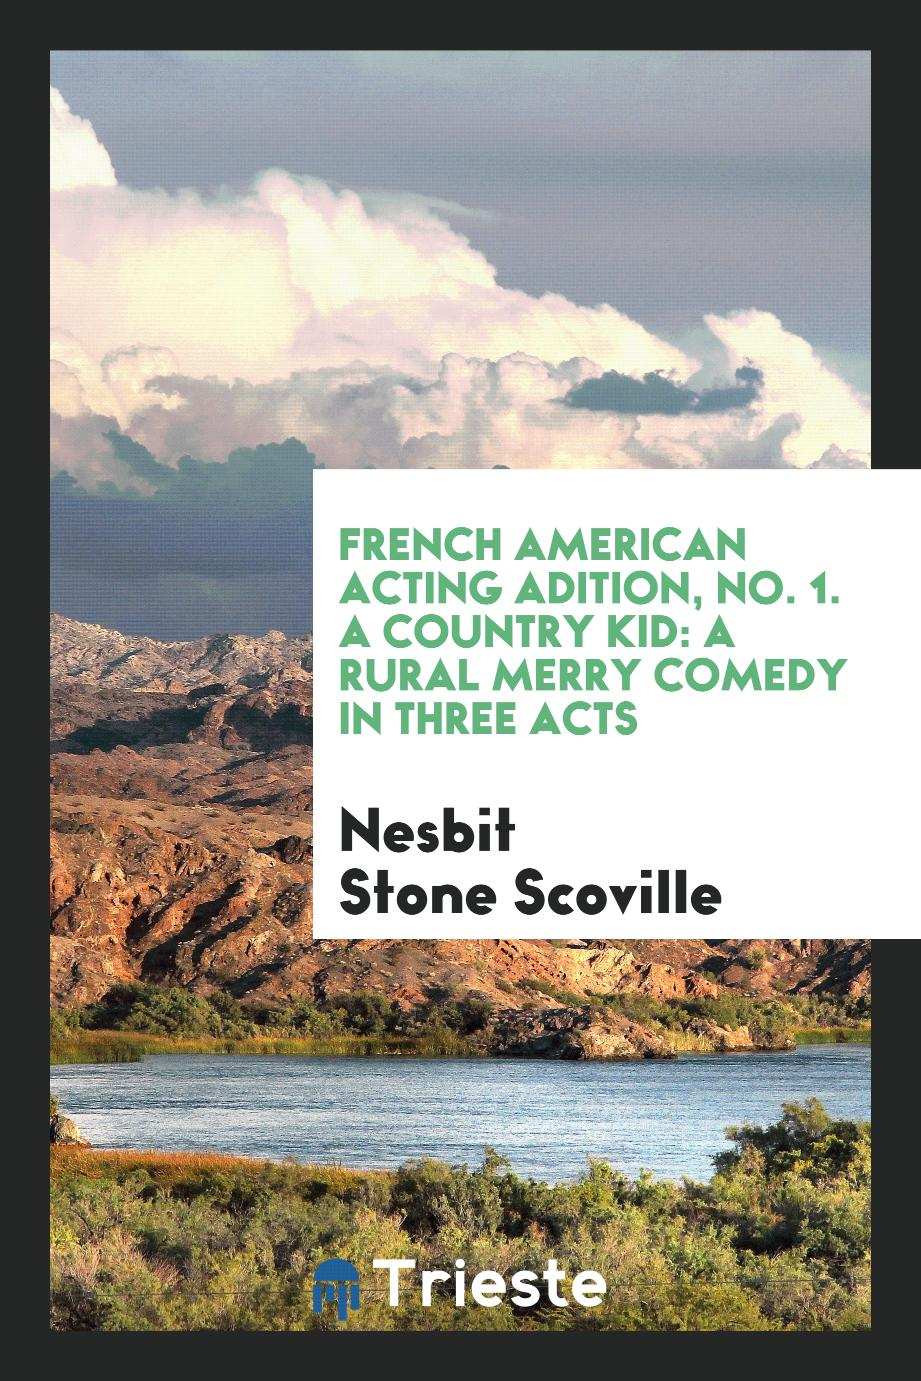 French American acting adition, No. 1. A country kid: a rural merry comedy in three acts